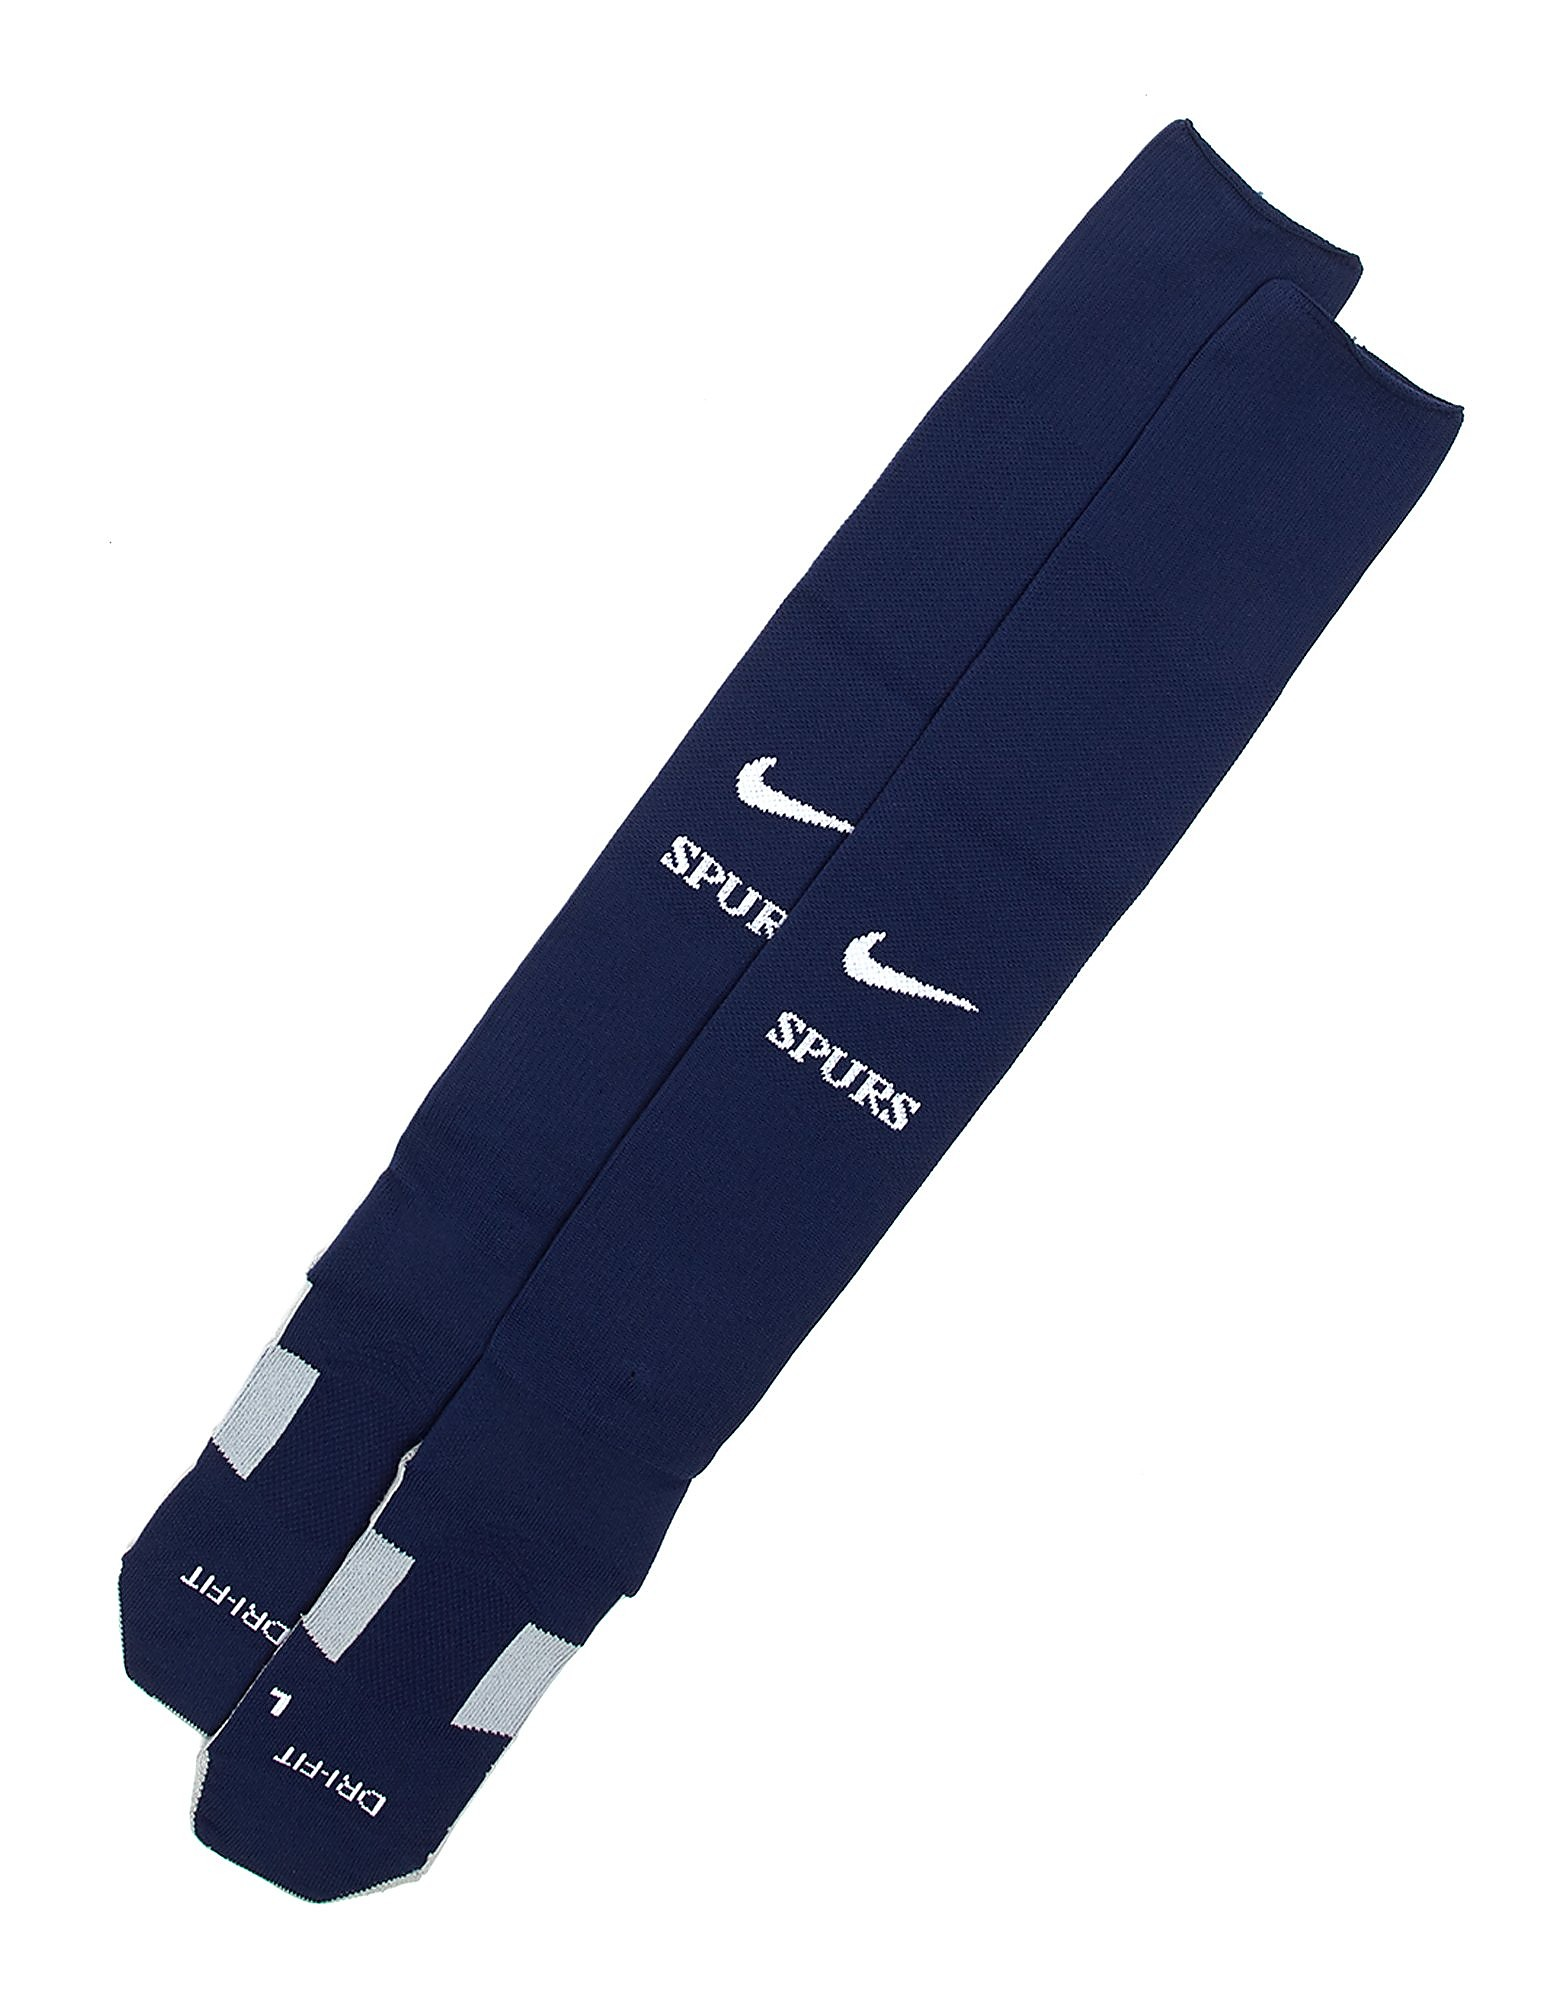 Nike Tottenham Hotspur 2017/18 Away Socks